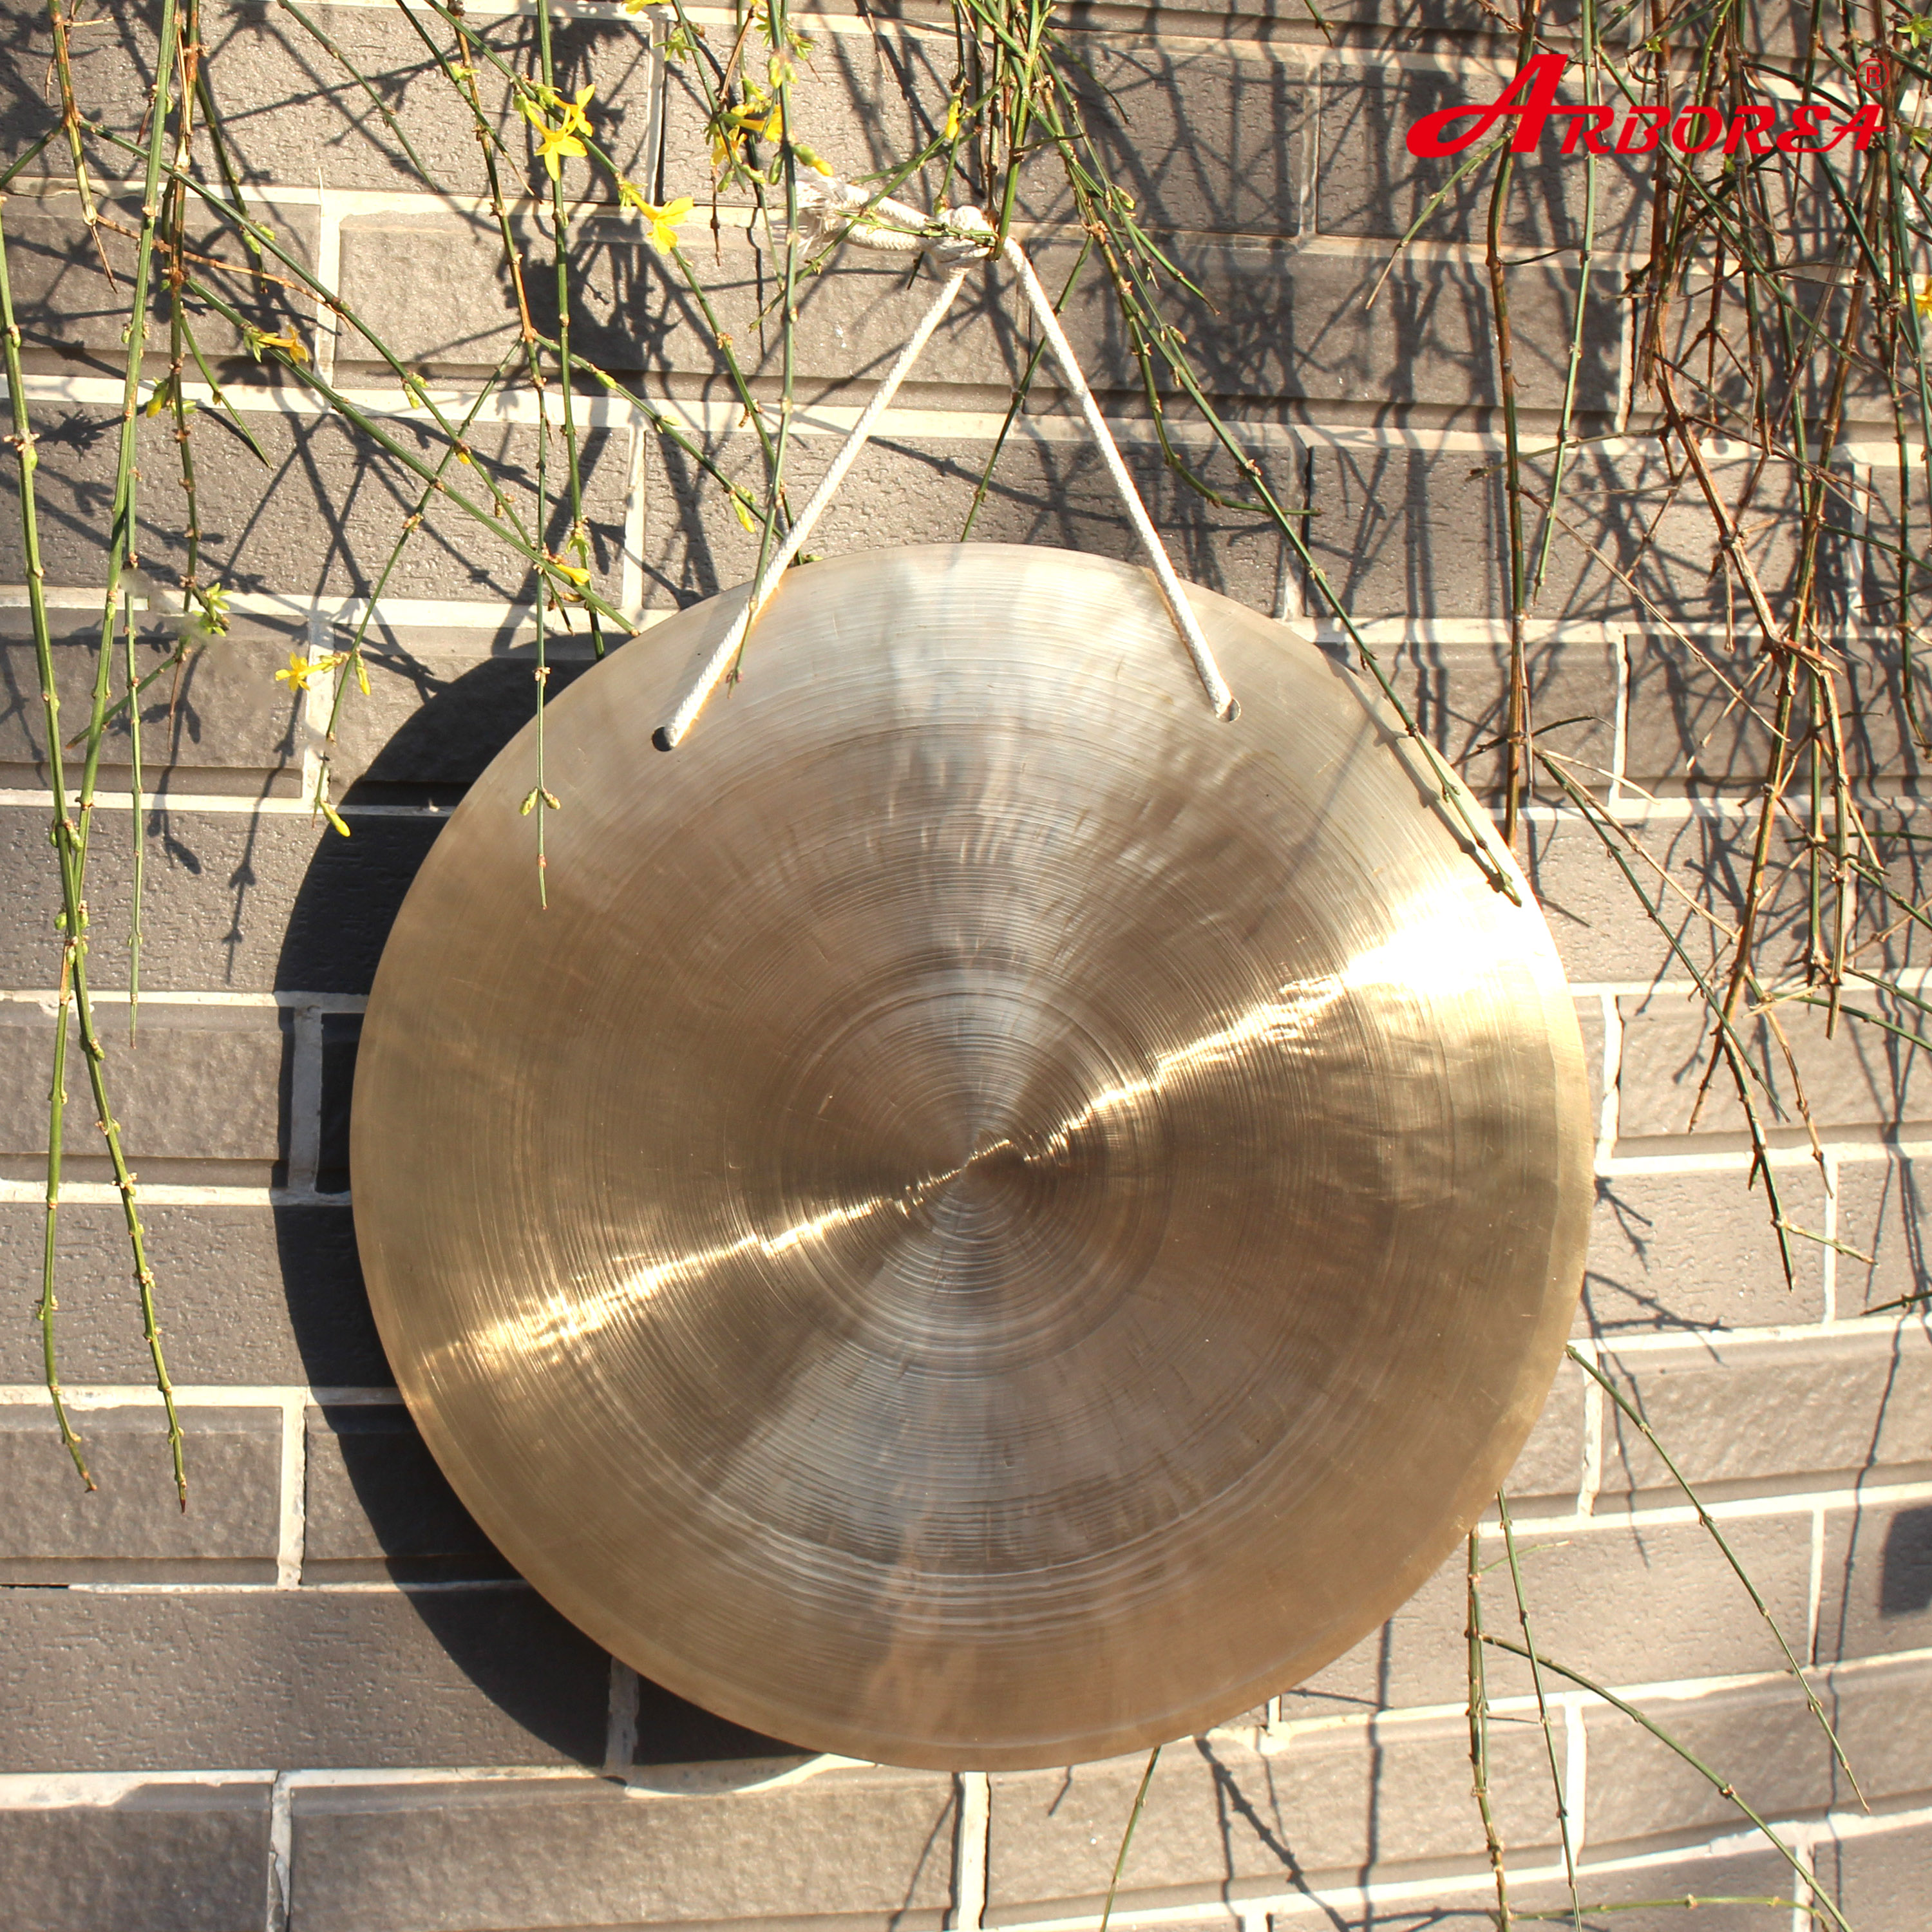 100 handmade percussion musical instruments traditional Chinese 14 wind gong MM with a free mallet without